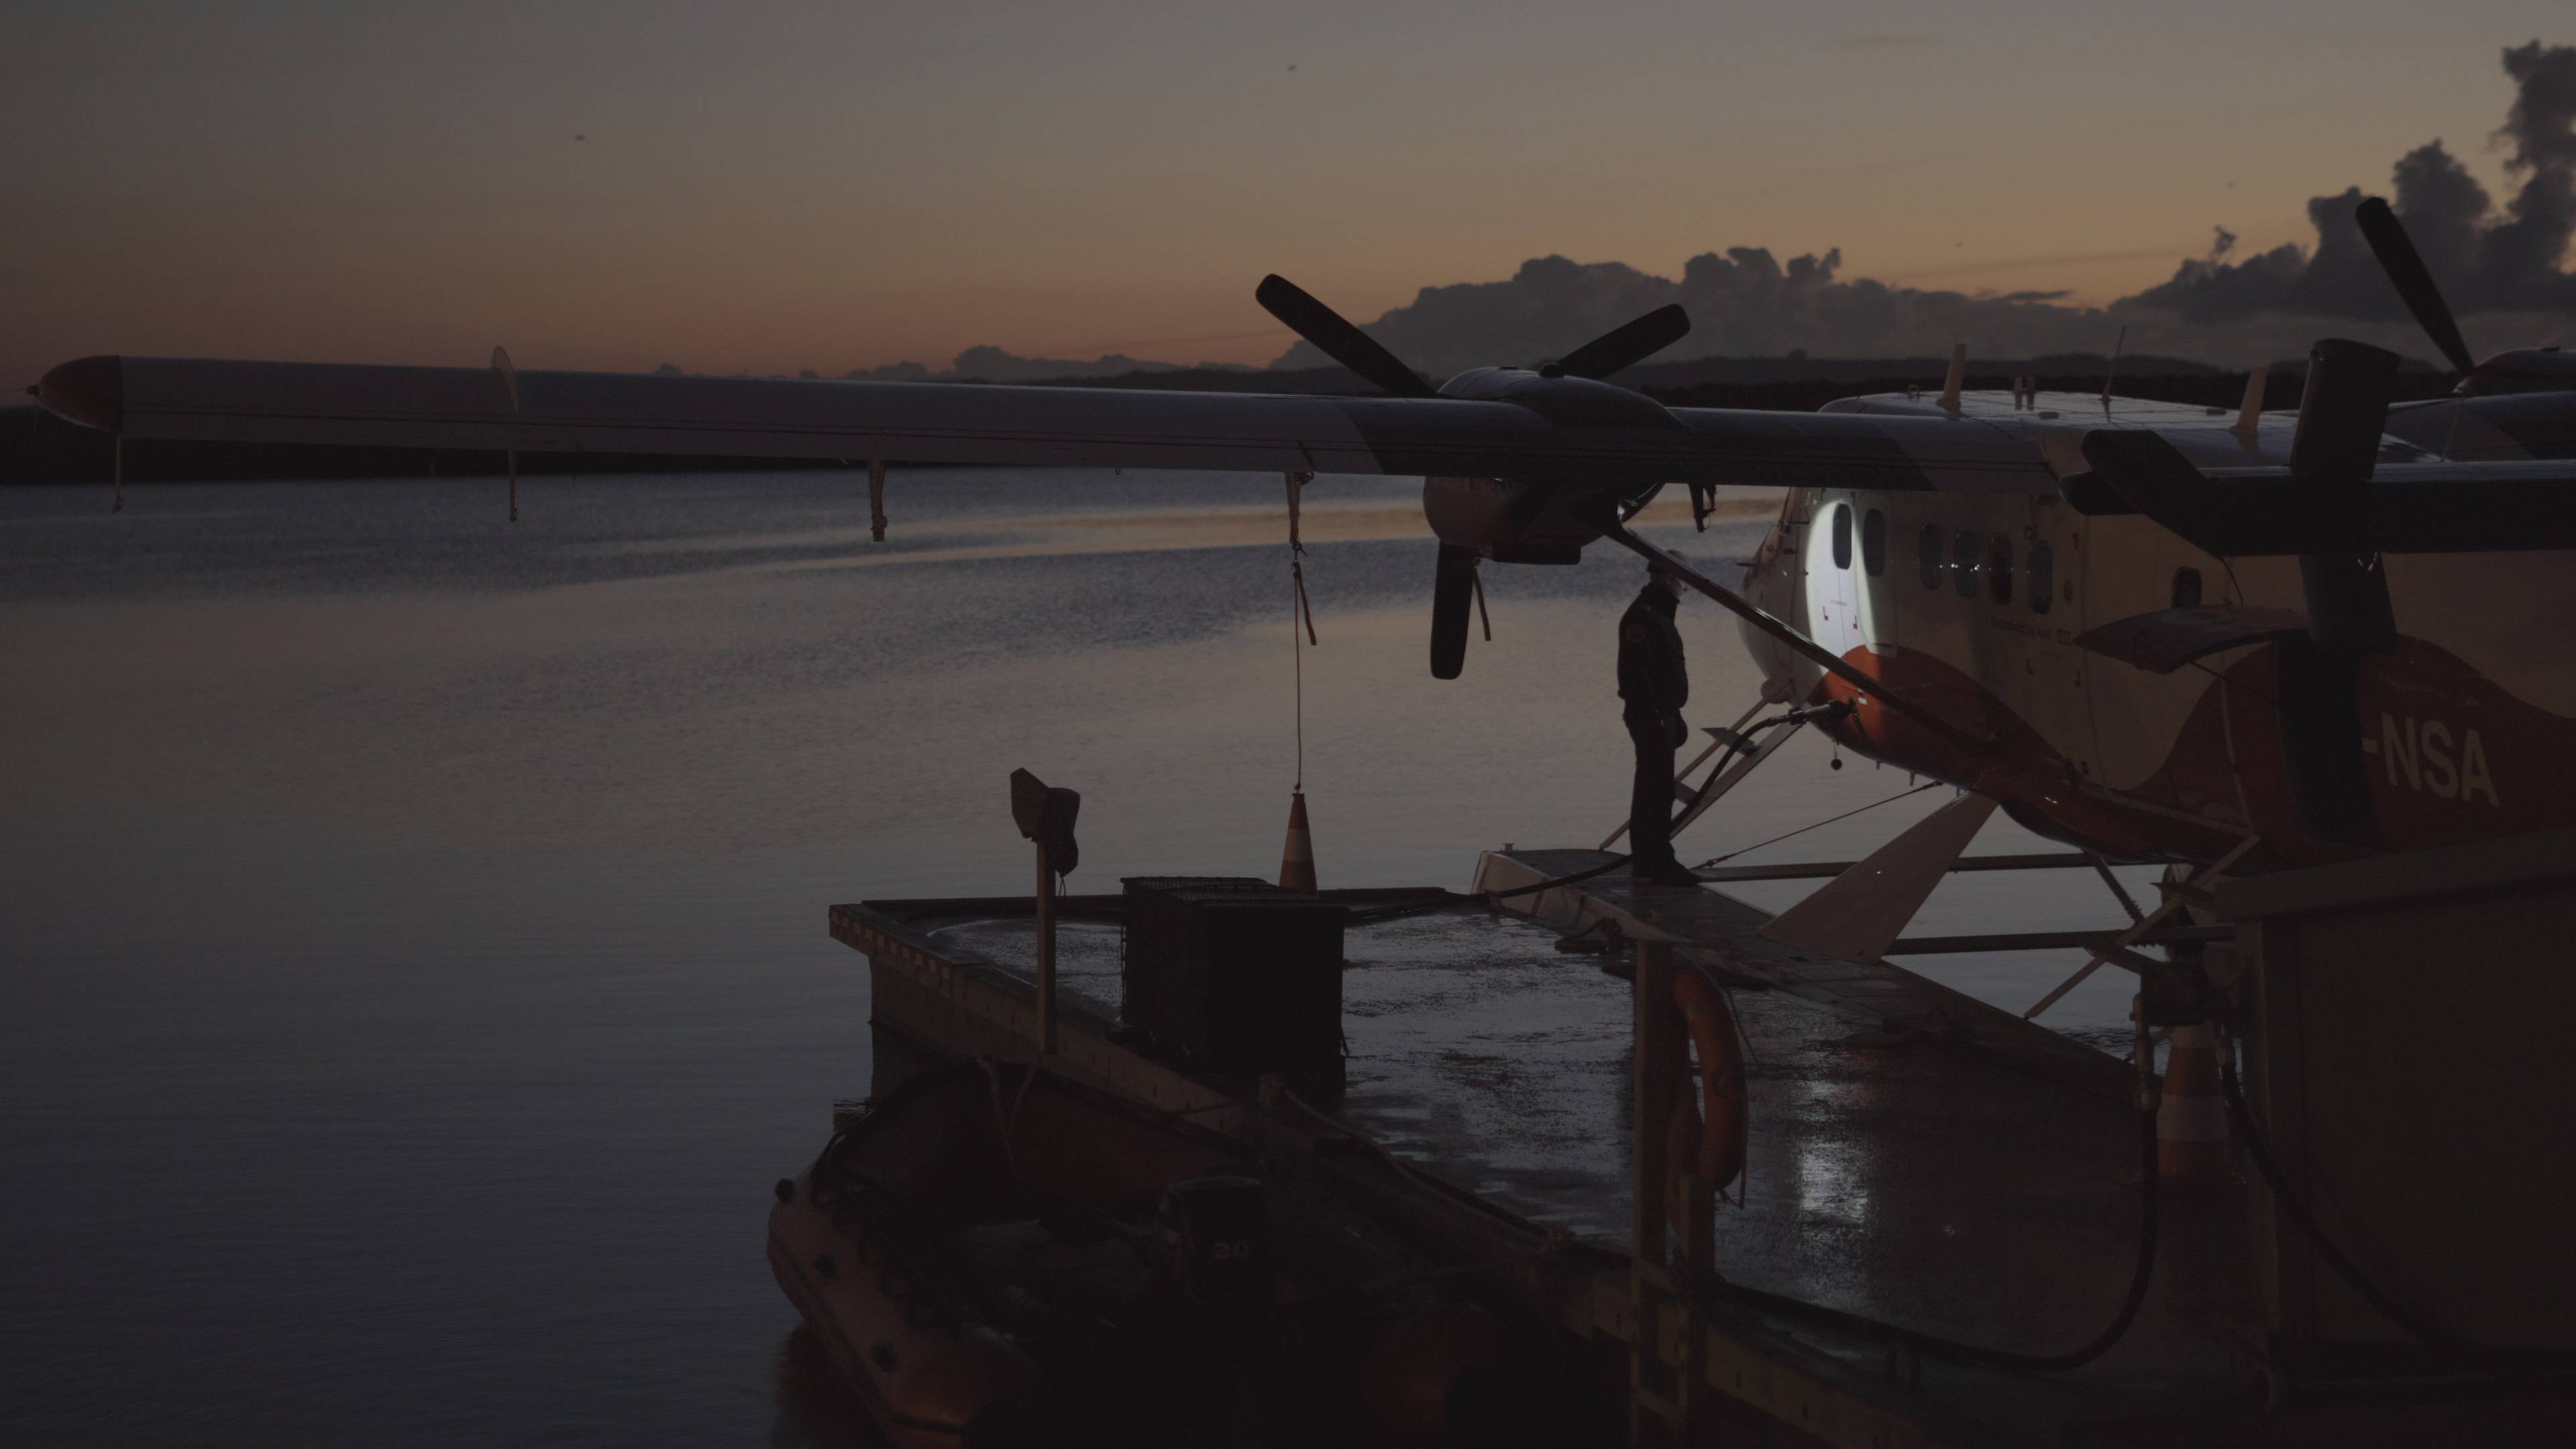 Flight mechanic inspecting seaplane before take off using the V3pro rechargeable headlamp